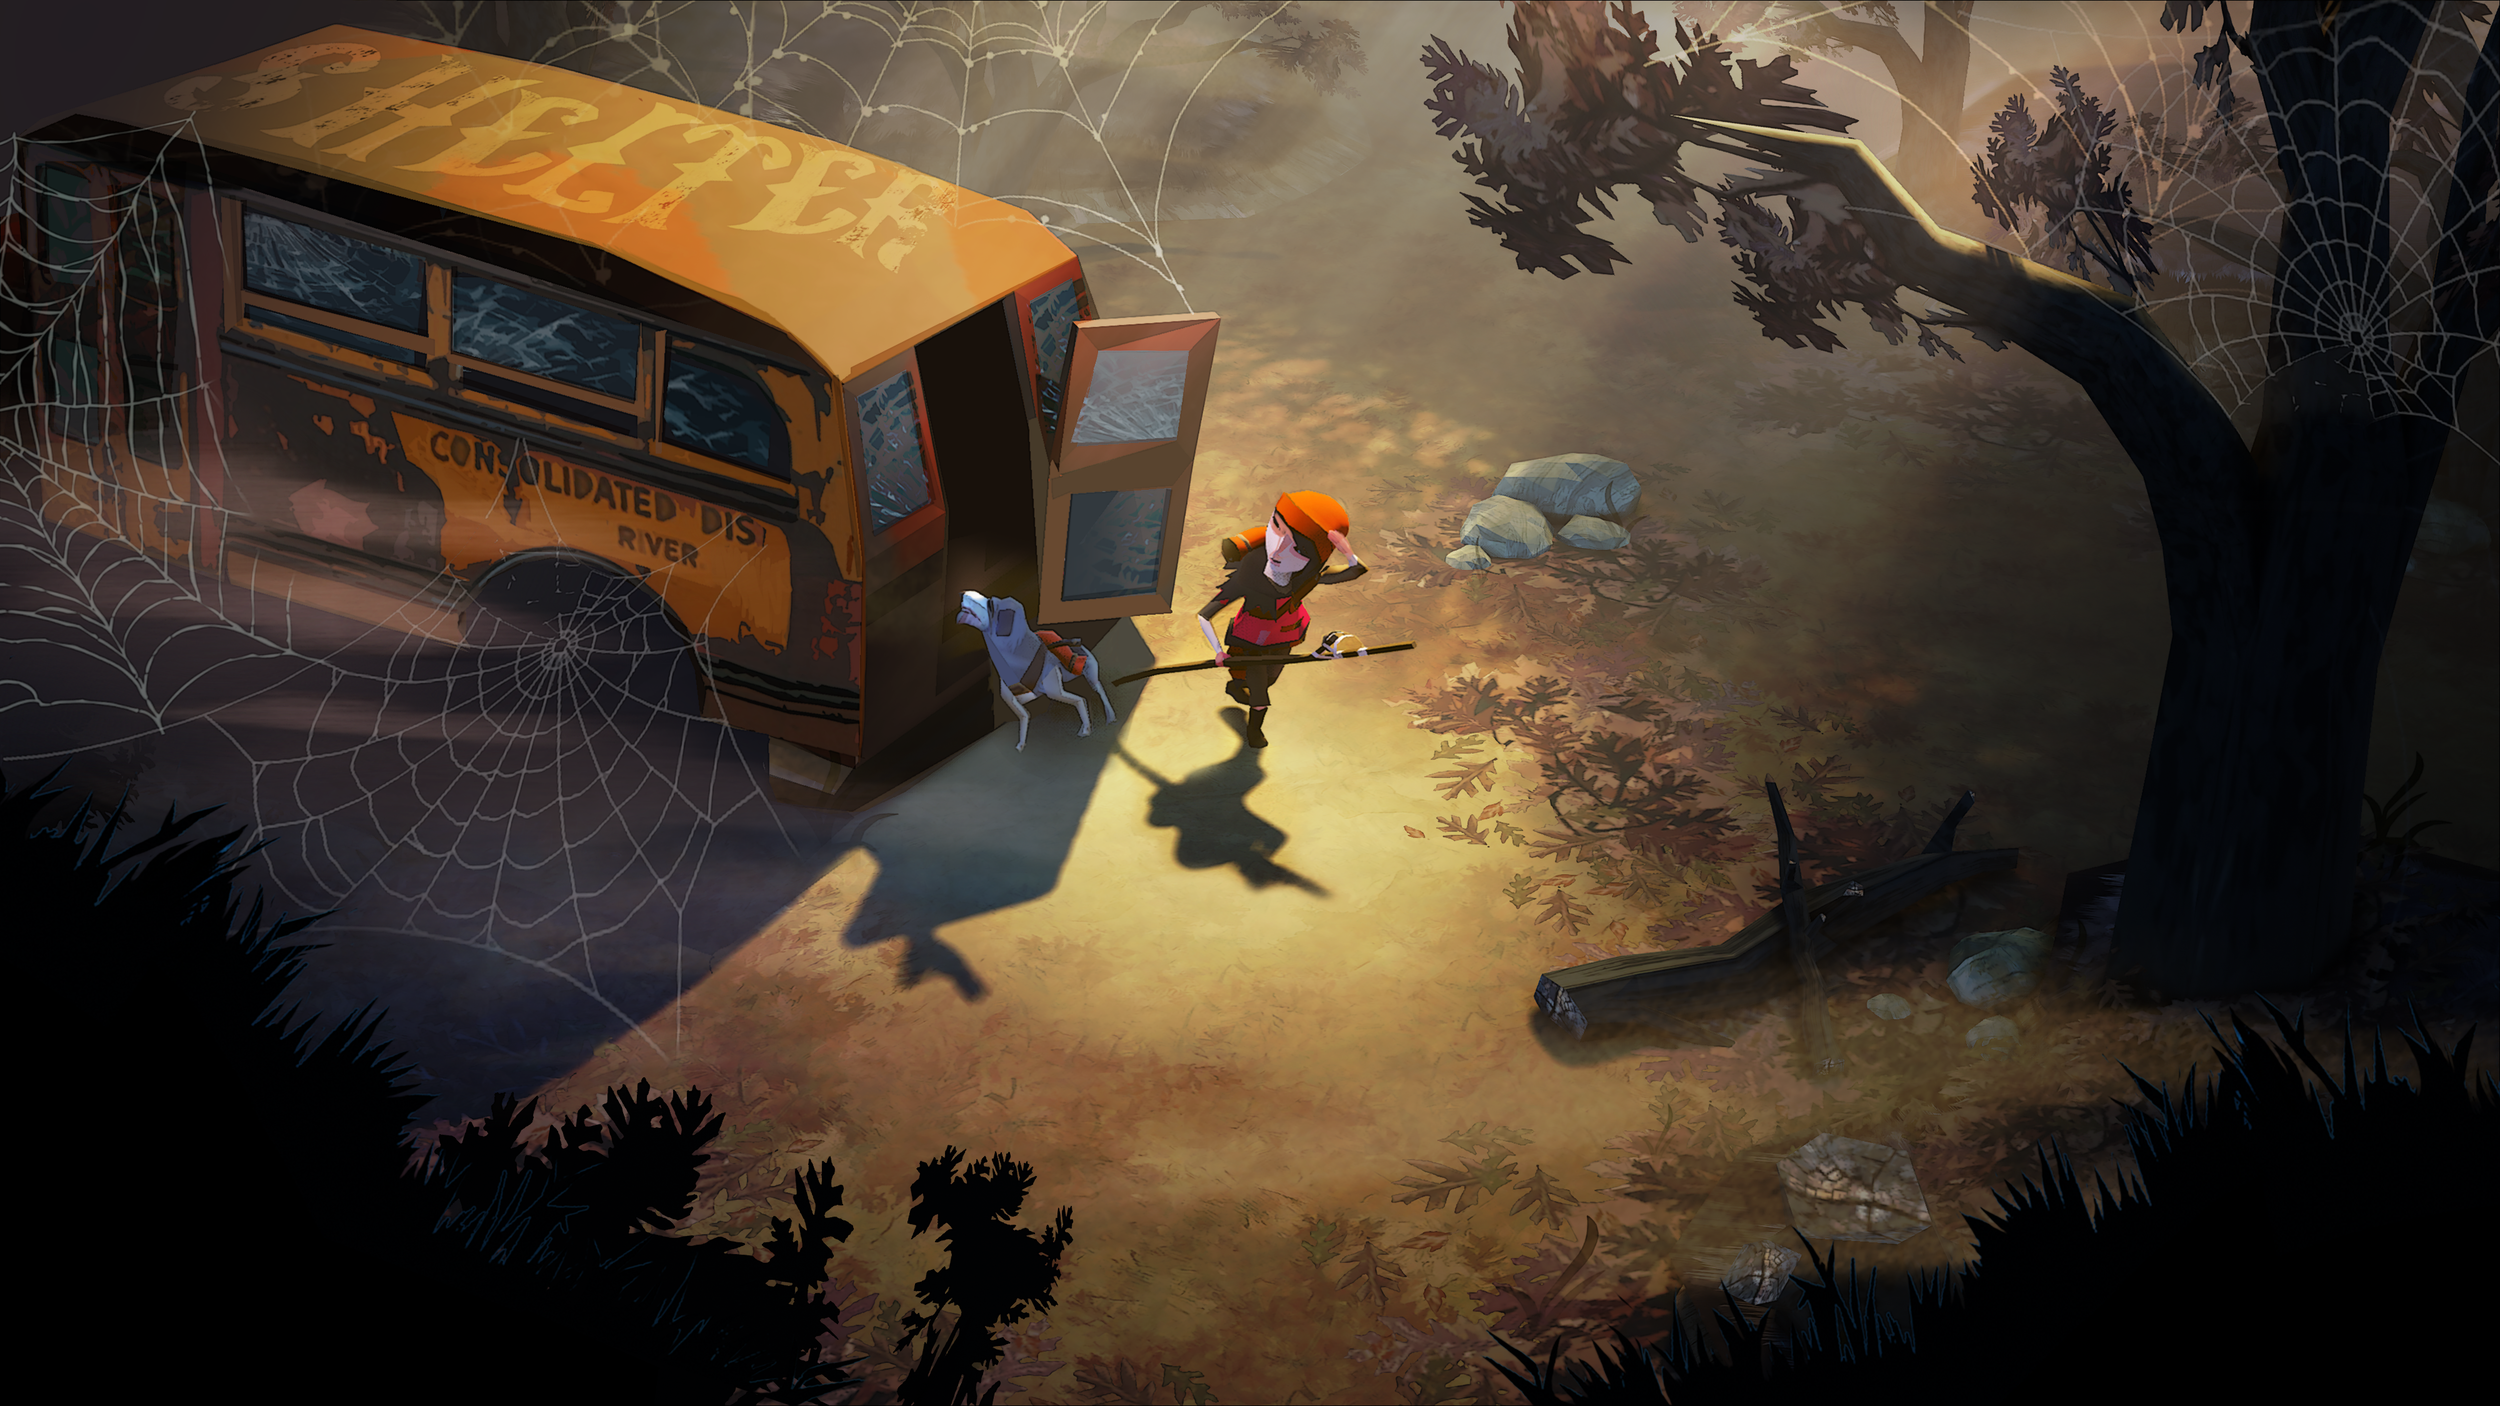 3. The Flame of the Flood